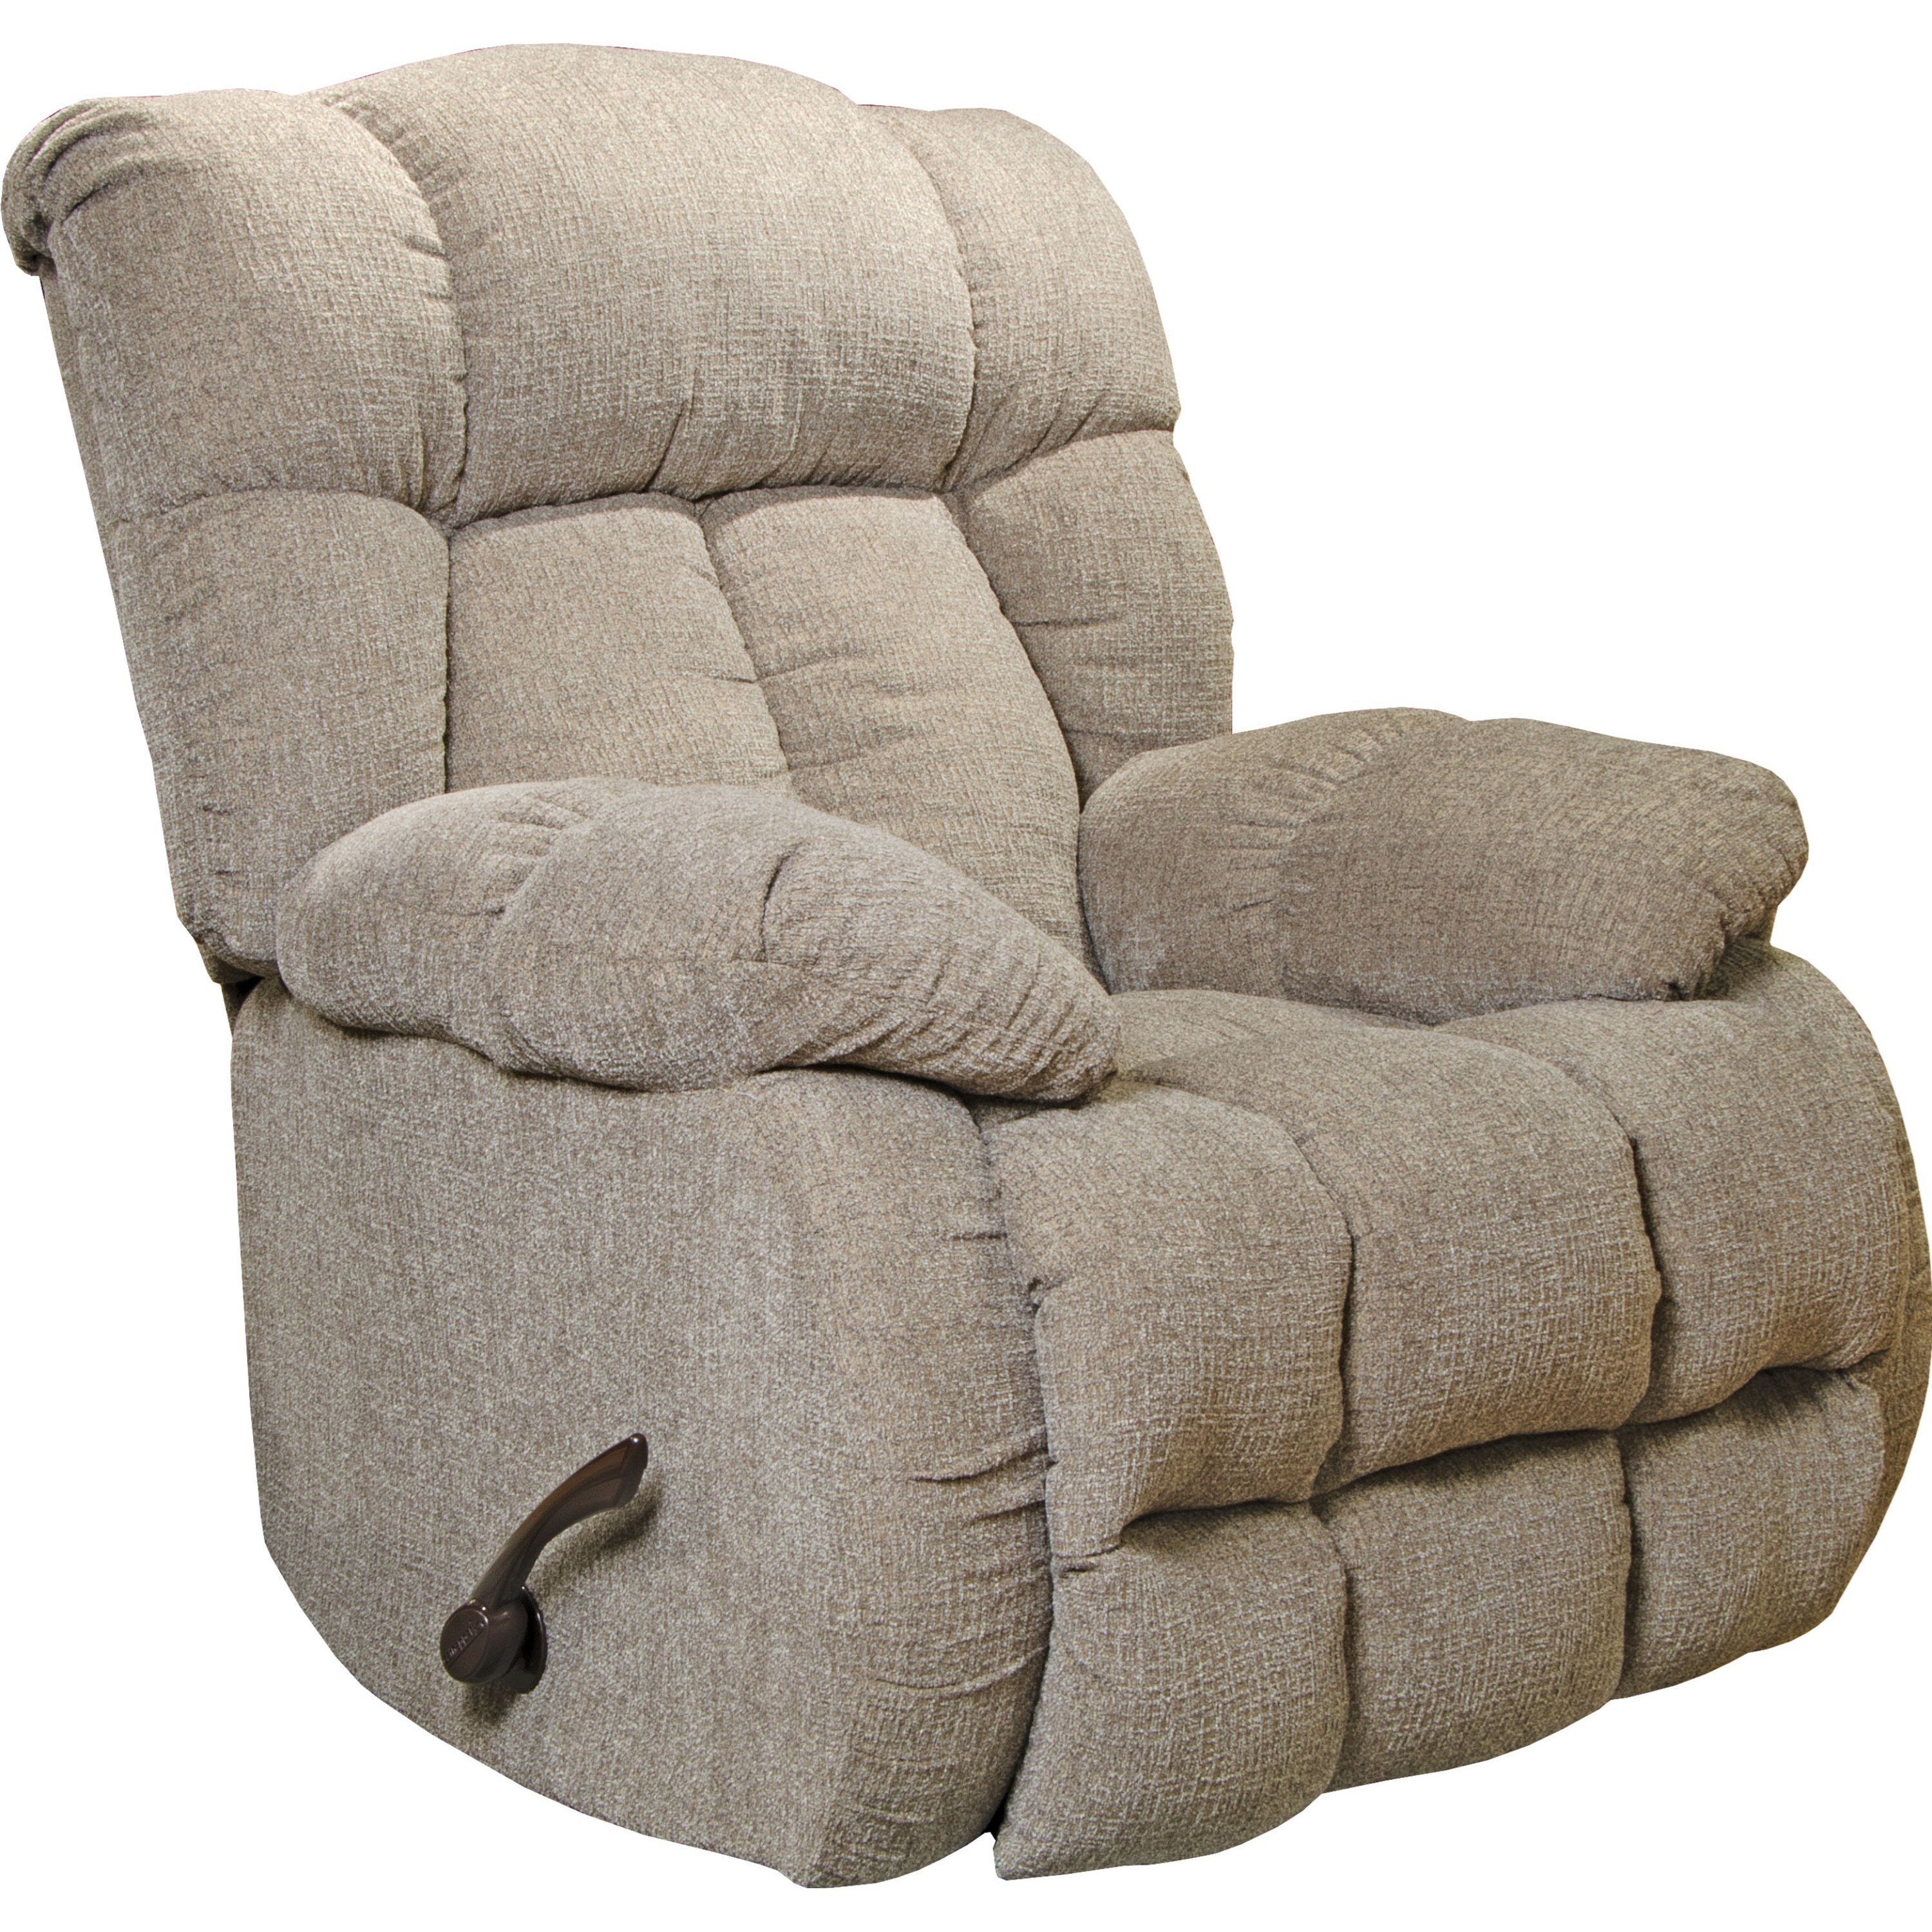 Brody Rocker Recliner by Catnapper at Northeast Factory Direct